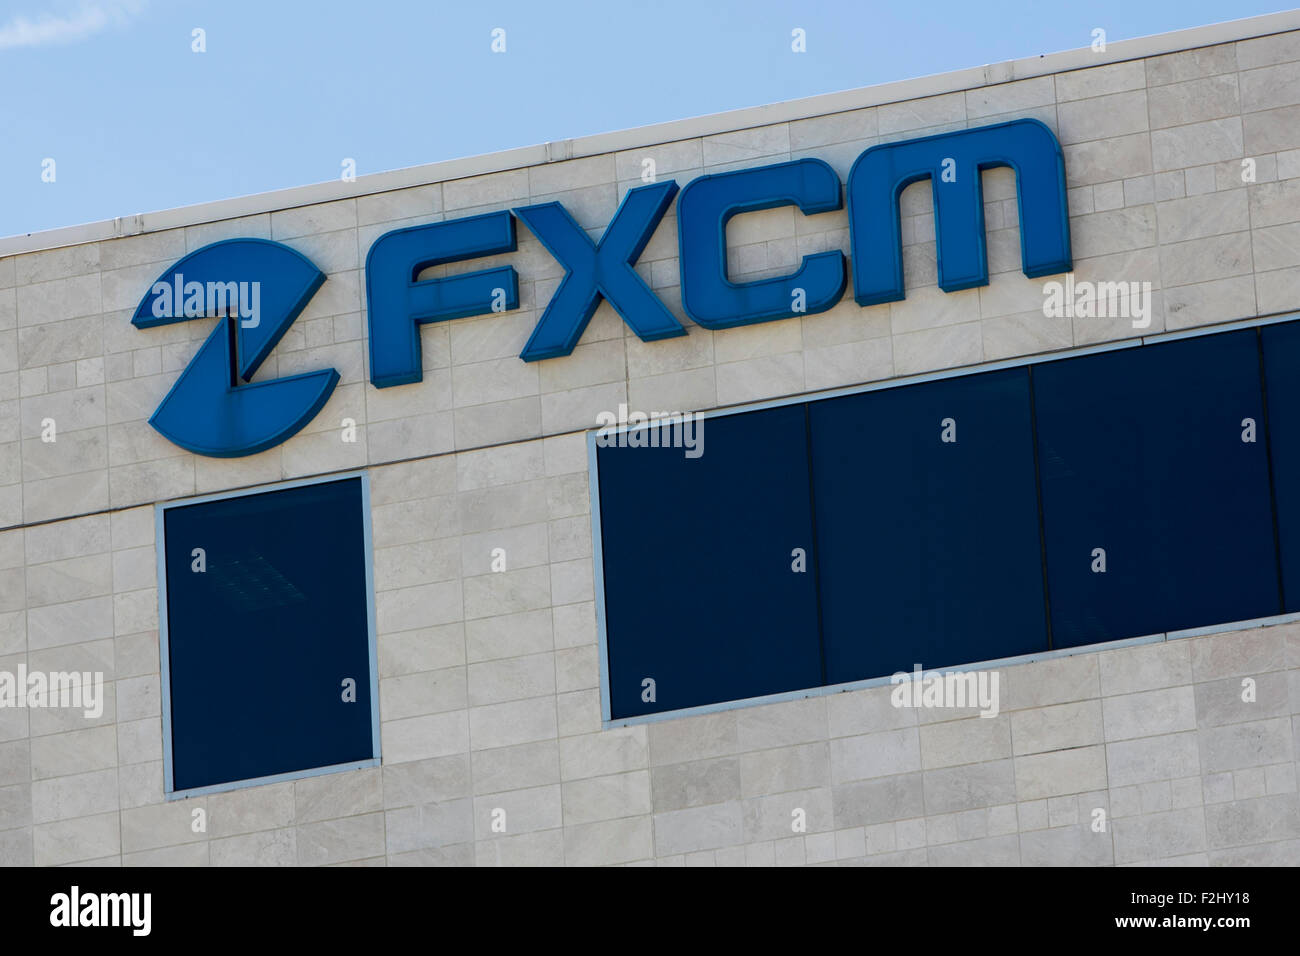 A logo sign outside of a facility occupied by Forex Capital Markets Inc., also known as FXCM, in Plano, Texas on - Stock Image